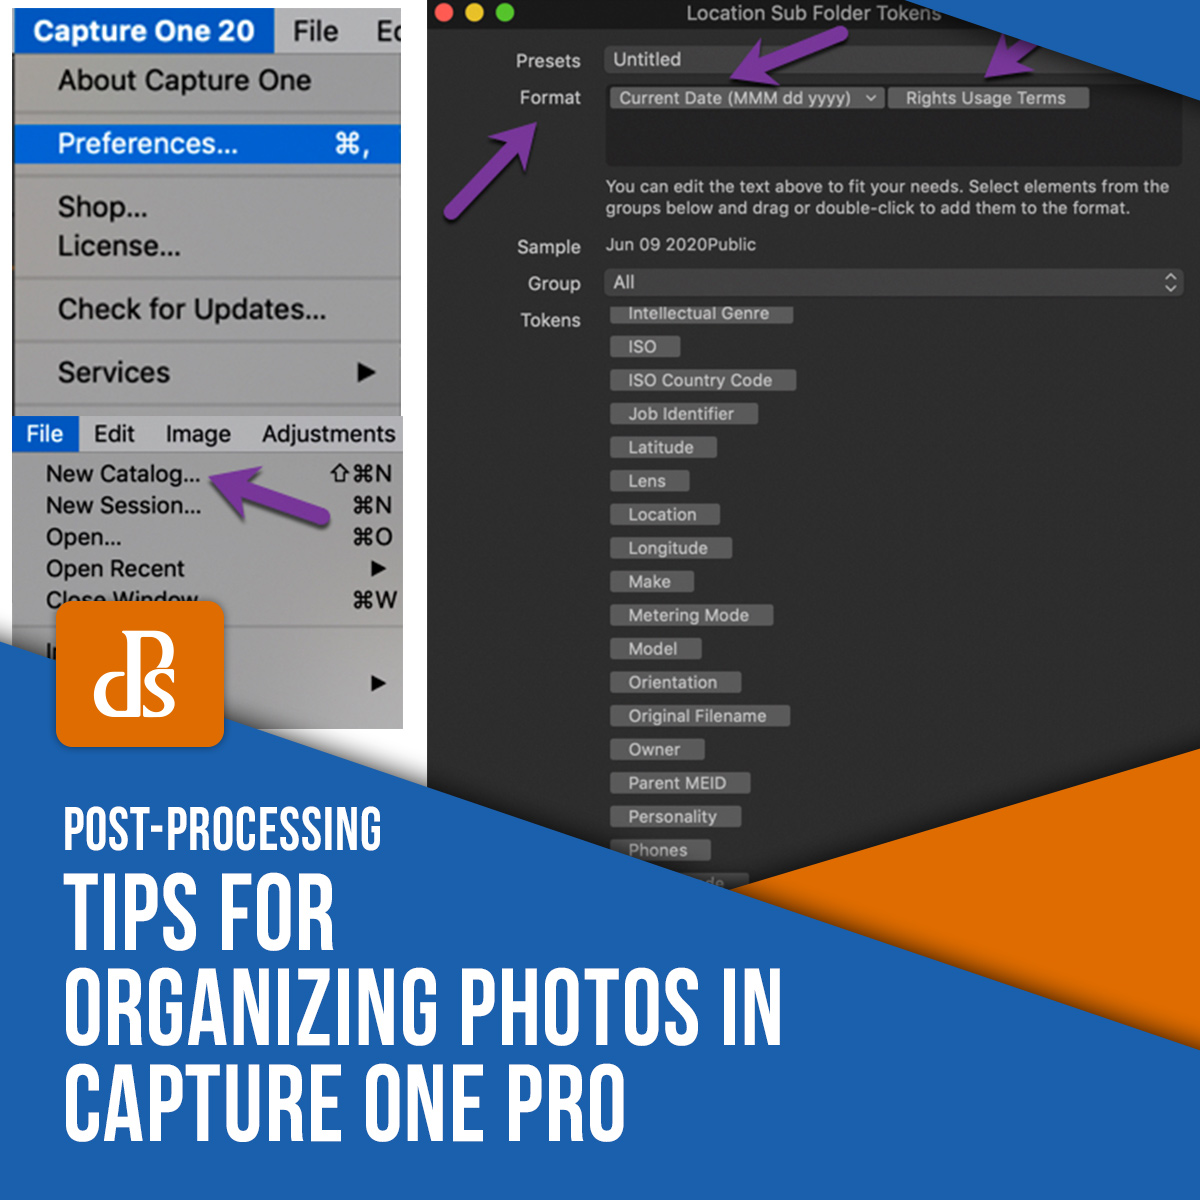 Tips for organizing photos in Capture One Pro